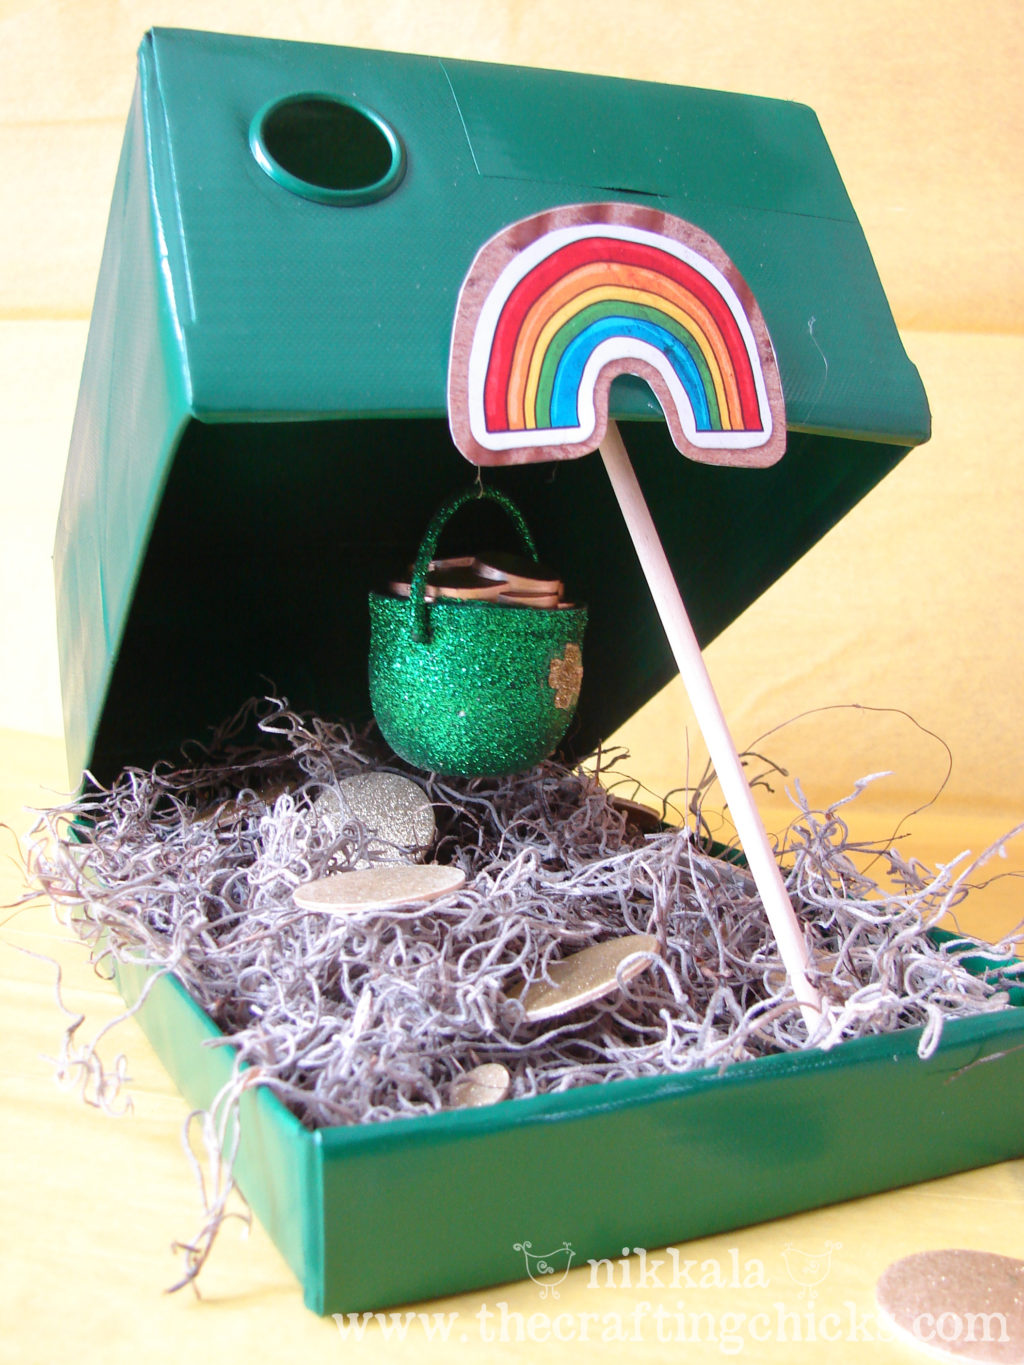 Leprechaun Trap made out of an old shoe box. Painted green with a treasure inside.